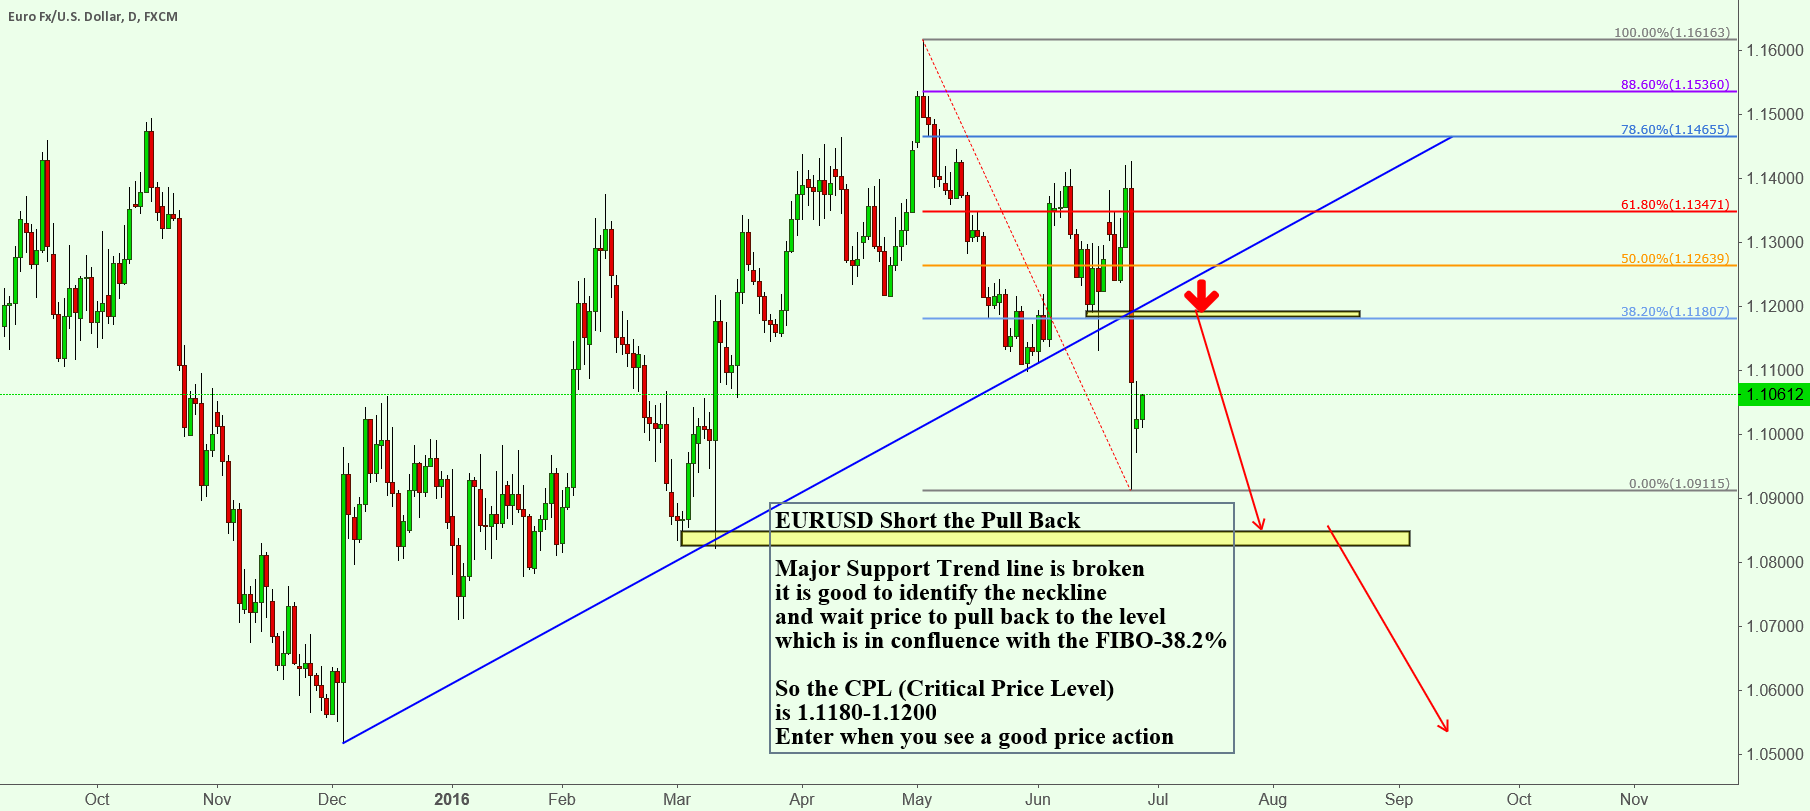 EURUSD Short the Pull Back